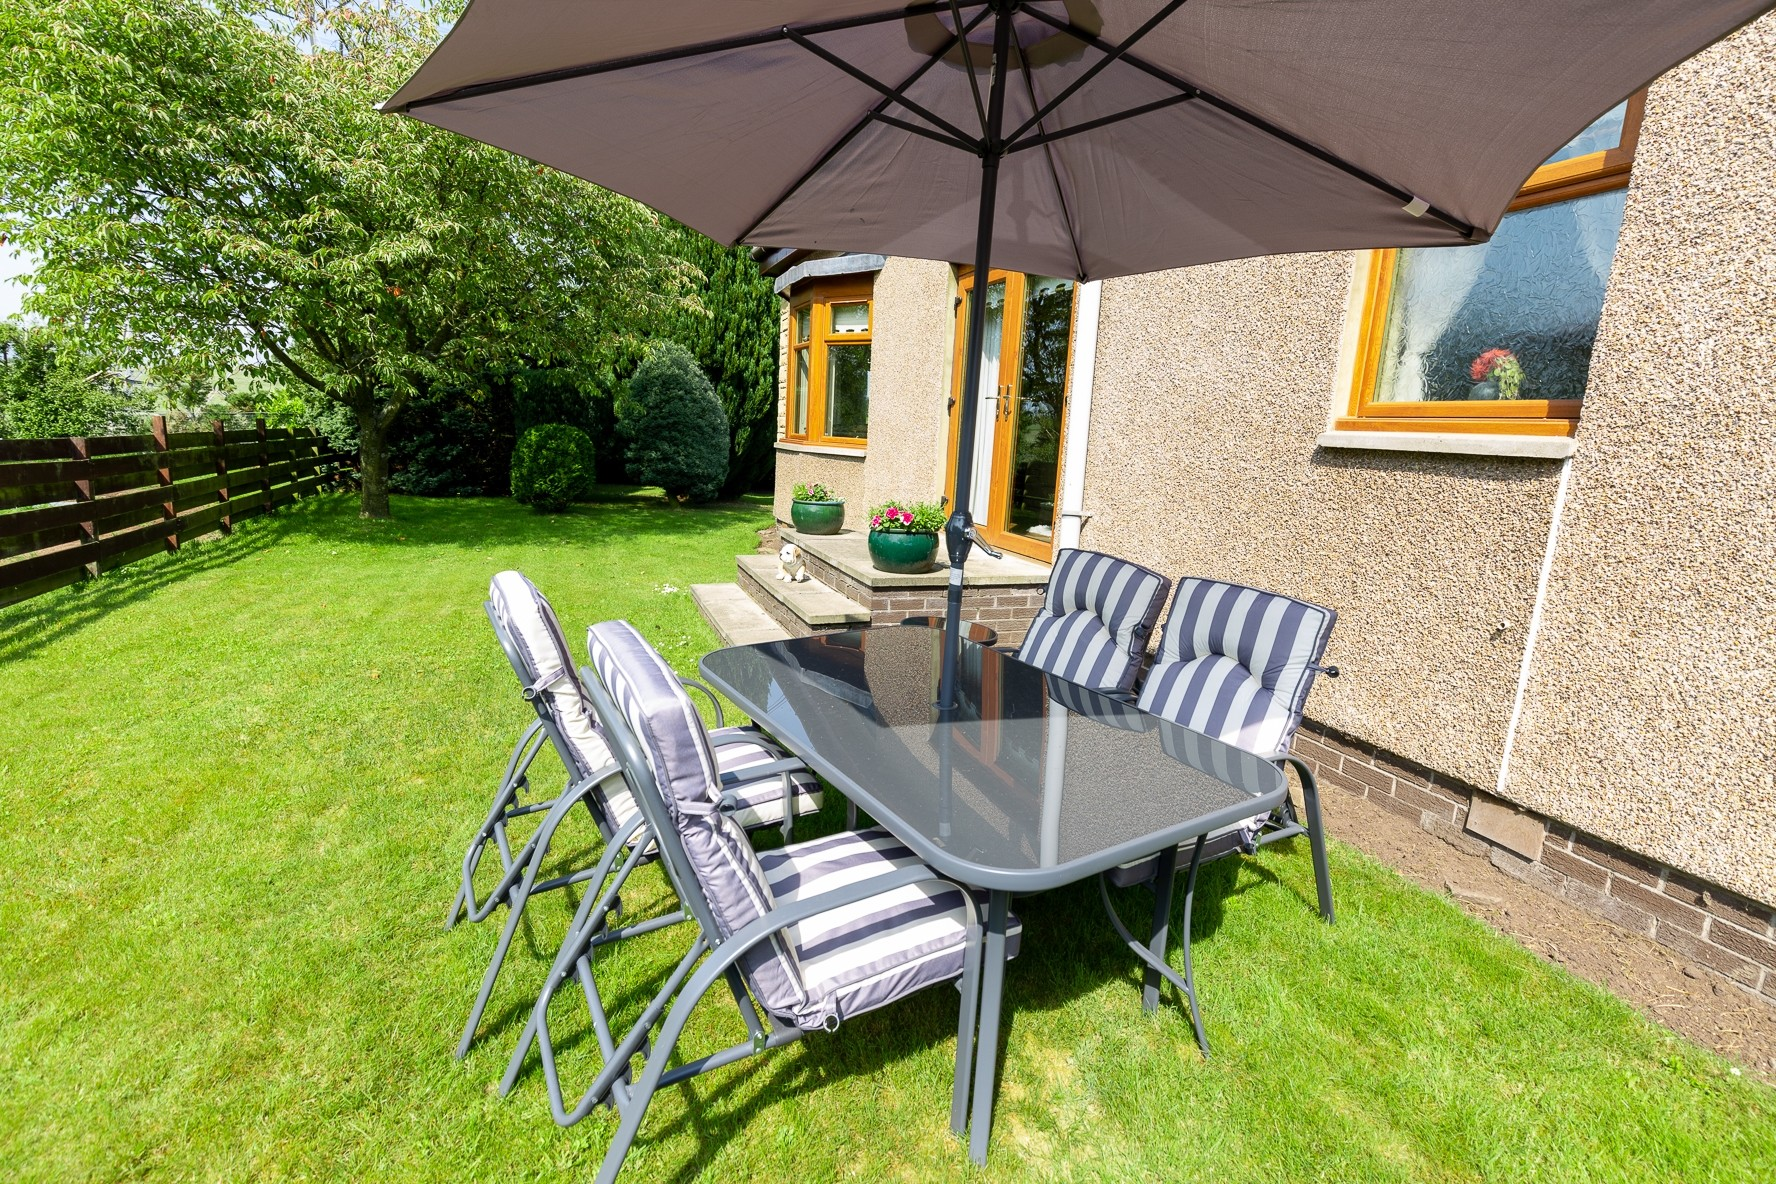 Profitable Boarding Kennels with Superb Family Home in 2.5 acres, Central Scotland - Image 10